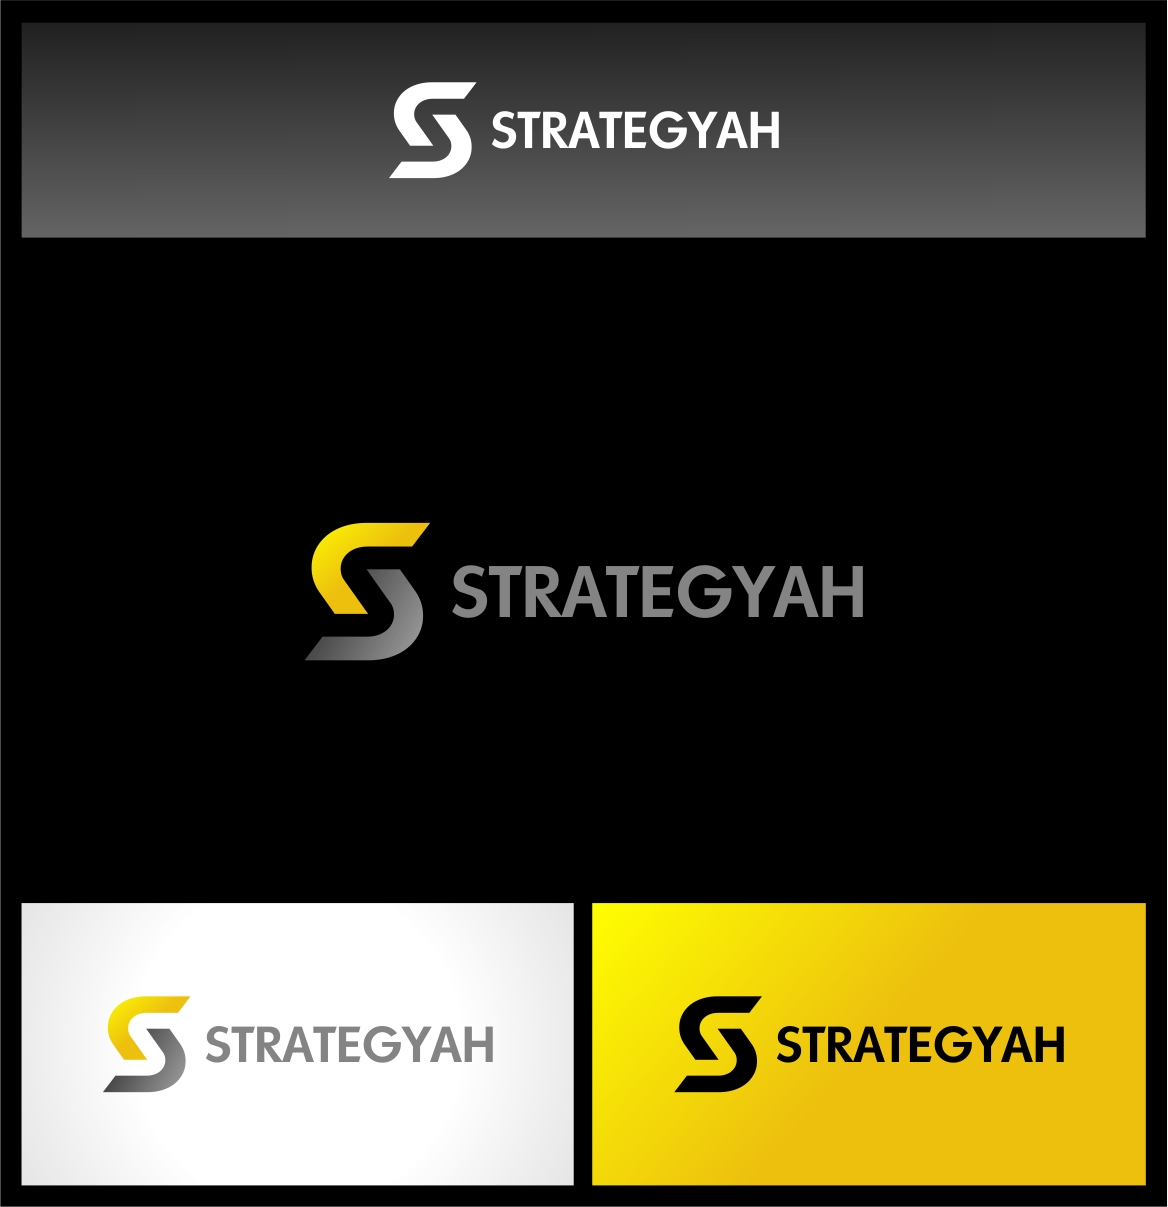 Logo Design by haidu - Entry No. 194 in the Logo Design Contest Creative Logo Design for Strategyah.